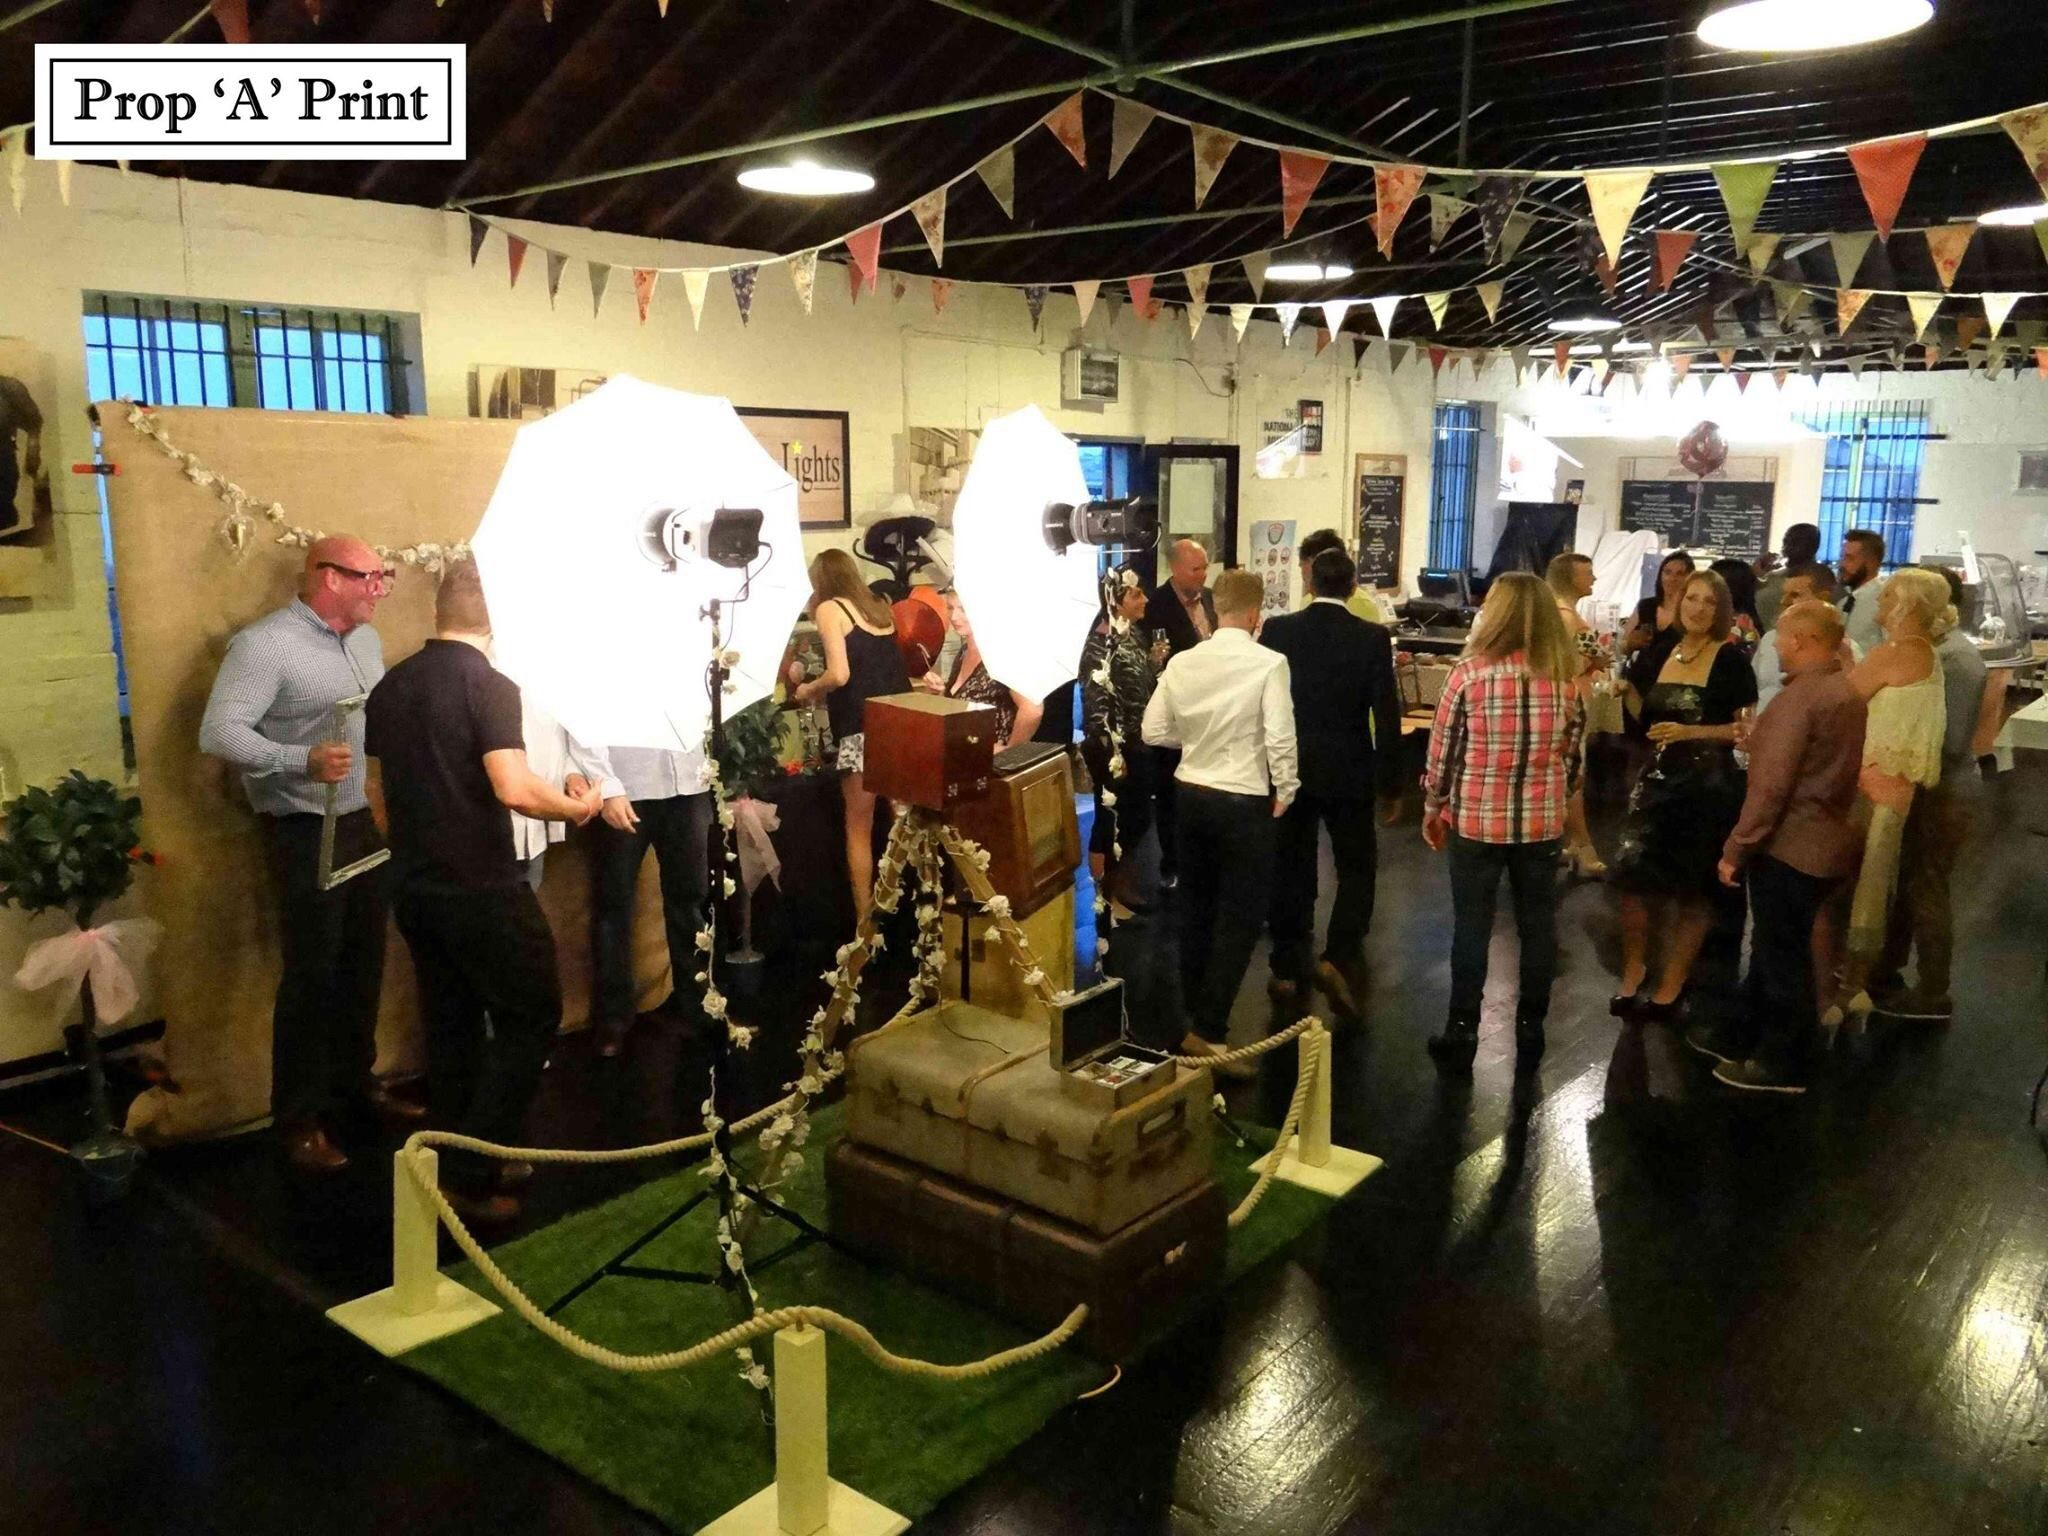 wedding photo booth props printable%0A Our Vintage Photo Booth in full swing at Explosion  Gosport  Photo Booth  Hampshire